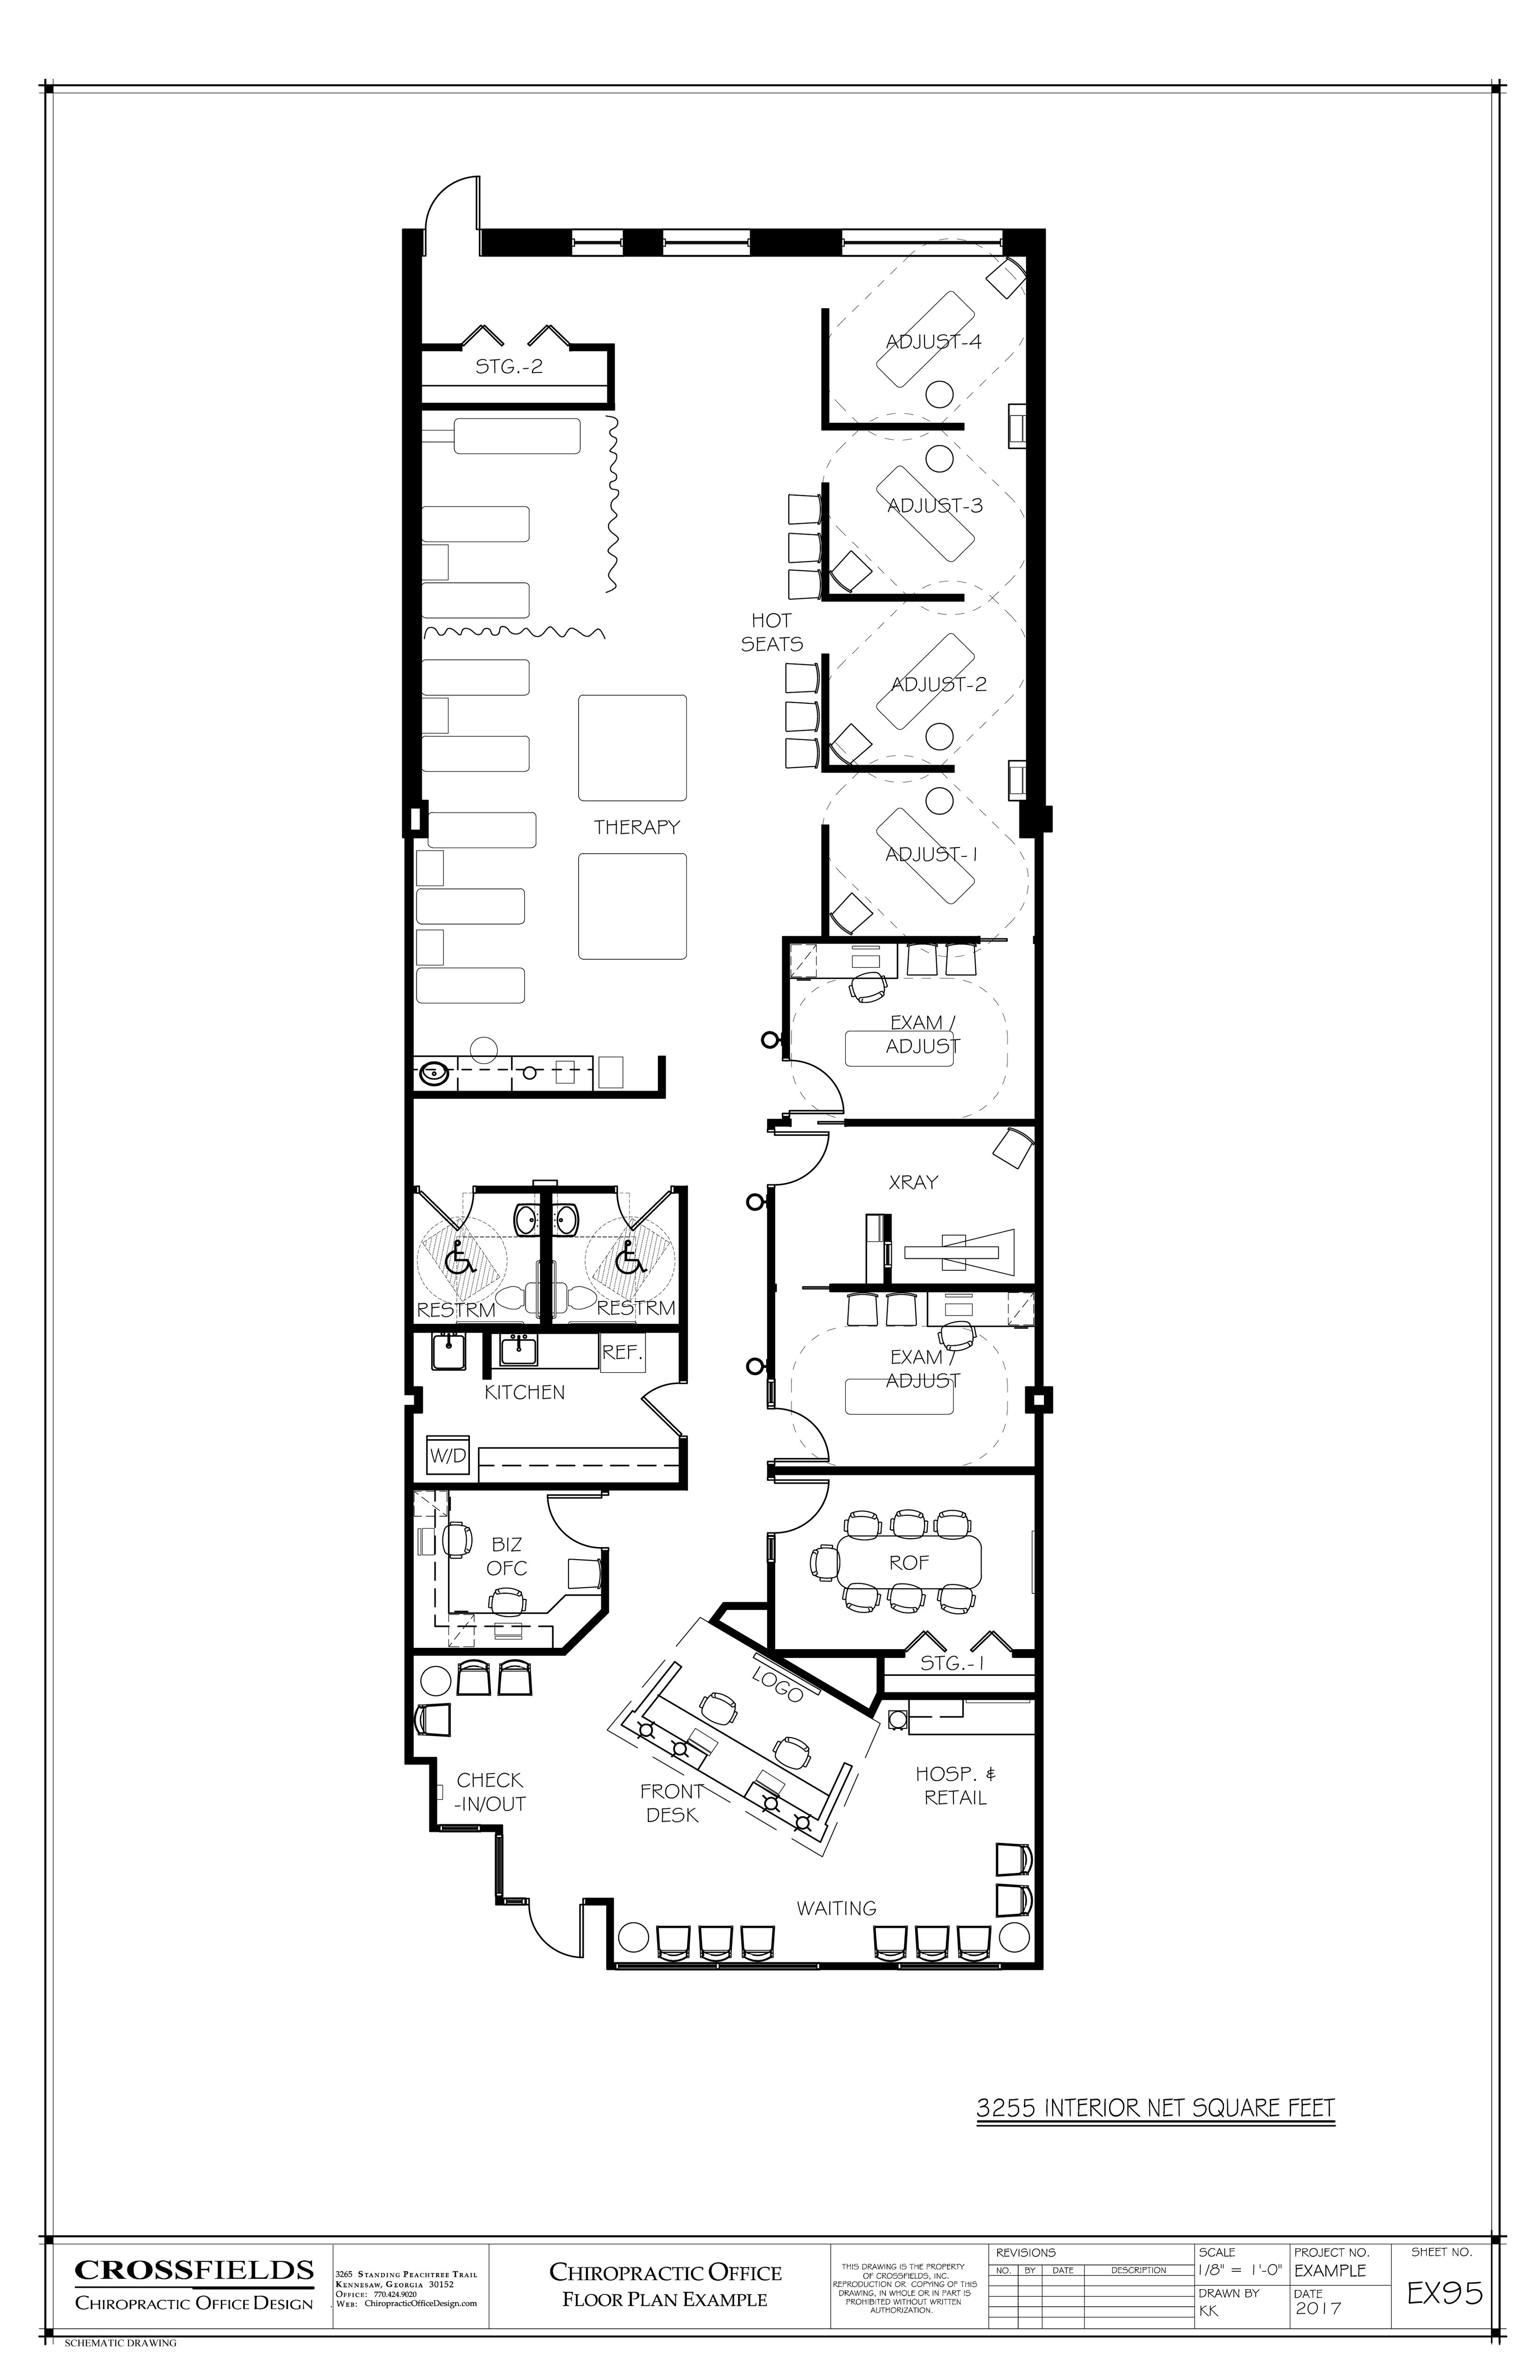 Example of chiropractic office floor plan multi doctor for Chiropractic office layout examples